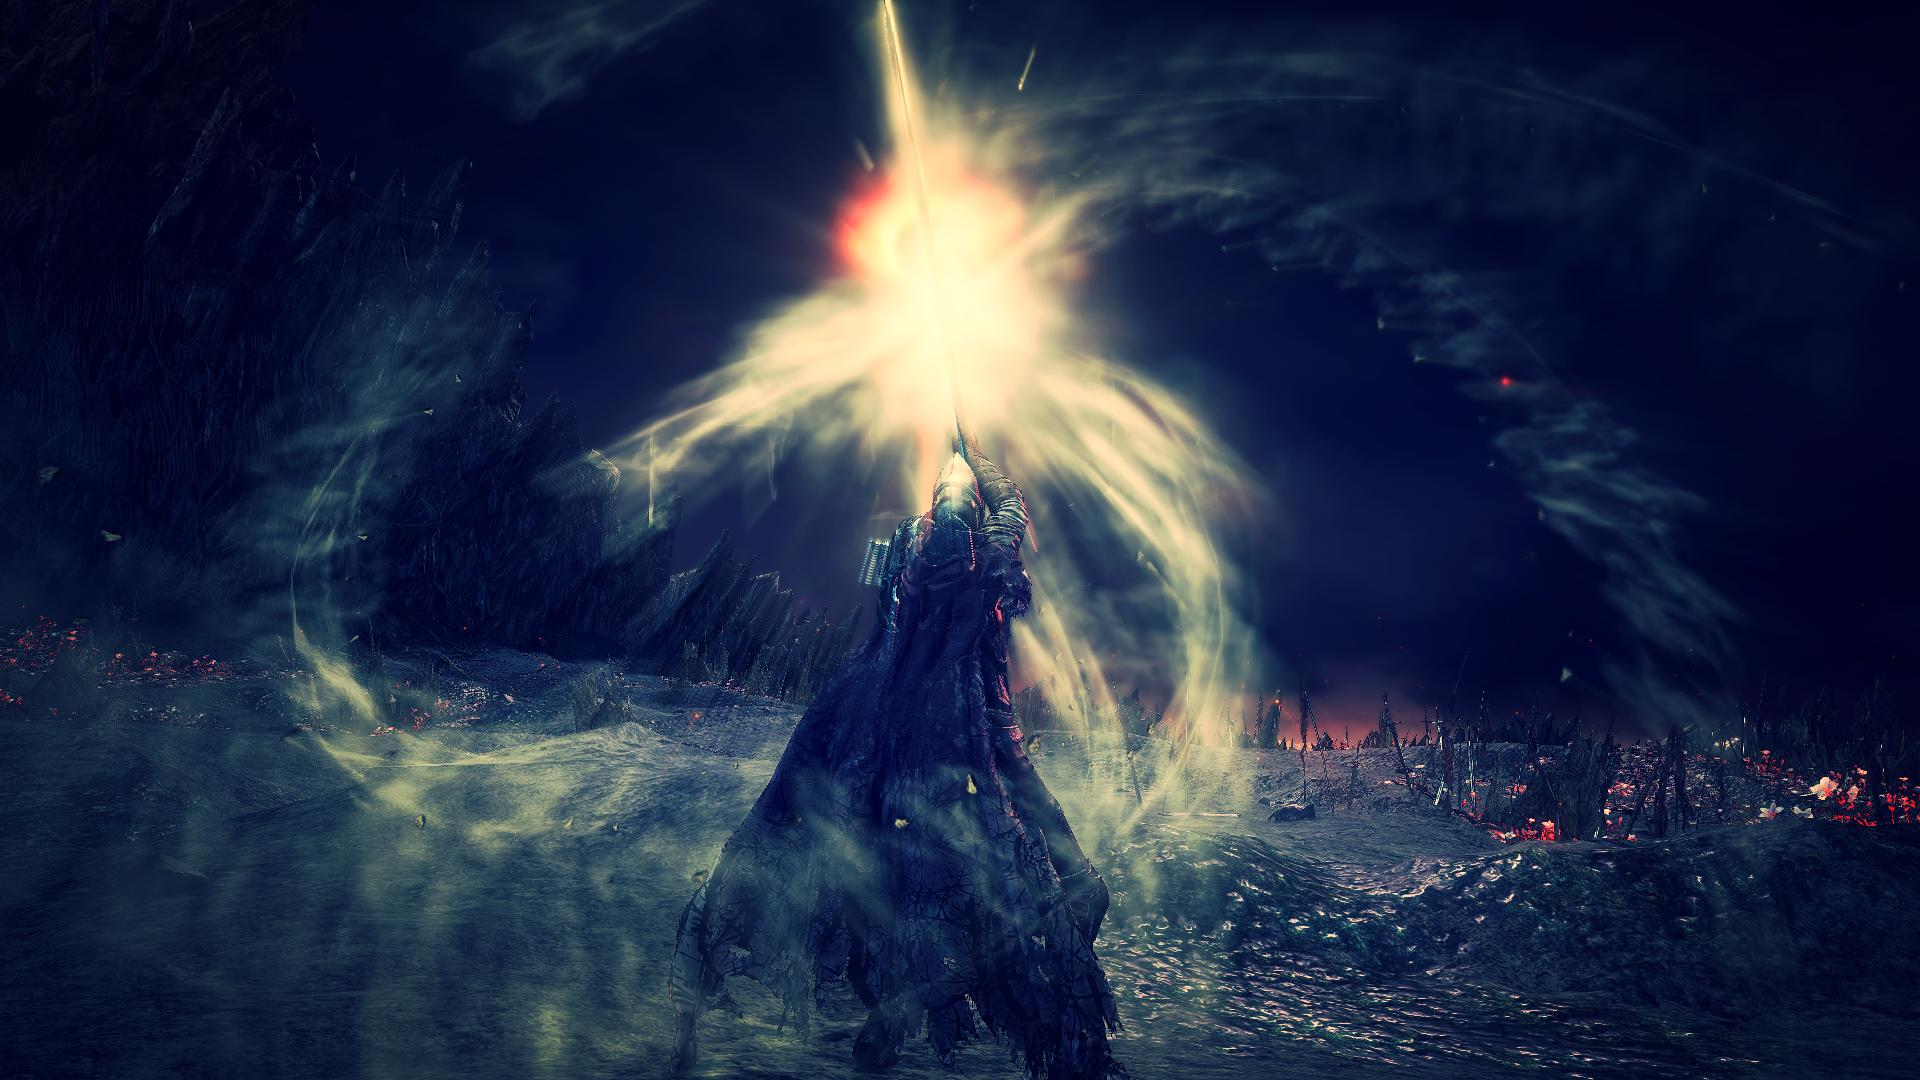 Emerald Dark Souls 3 Wallpapers Pictures Images